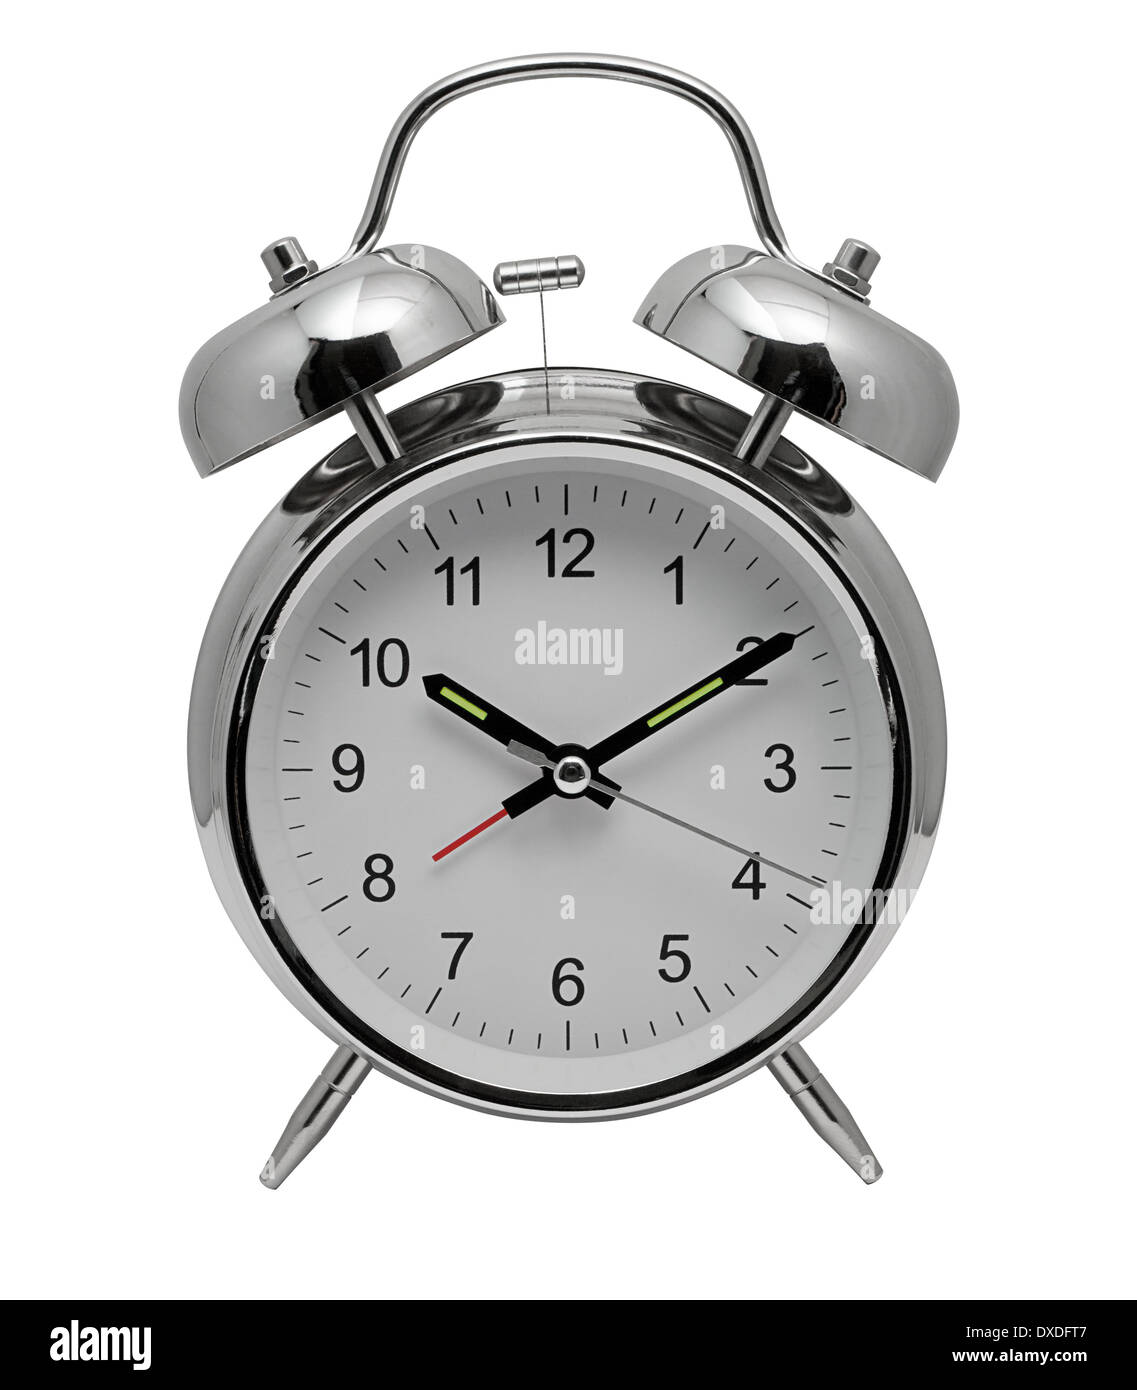 Traditional chrome metal Alarm Clock with bells and ringer on top to awaken you from sleep in the morning - Stock Image